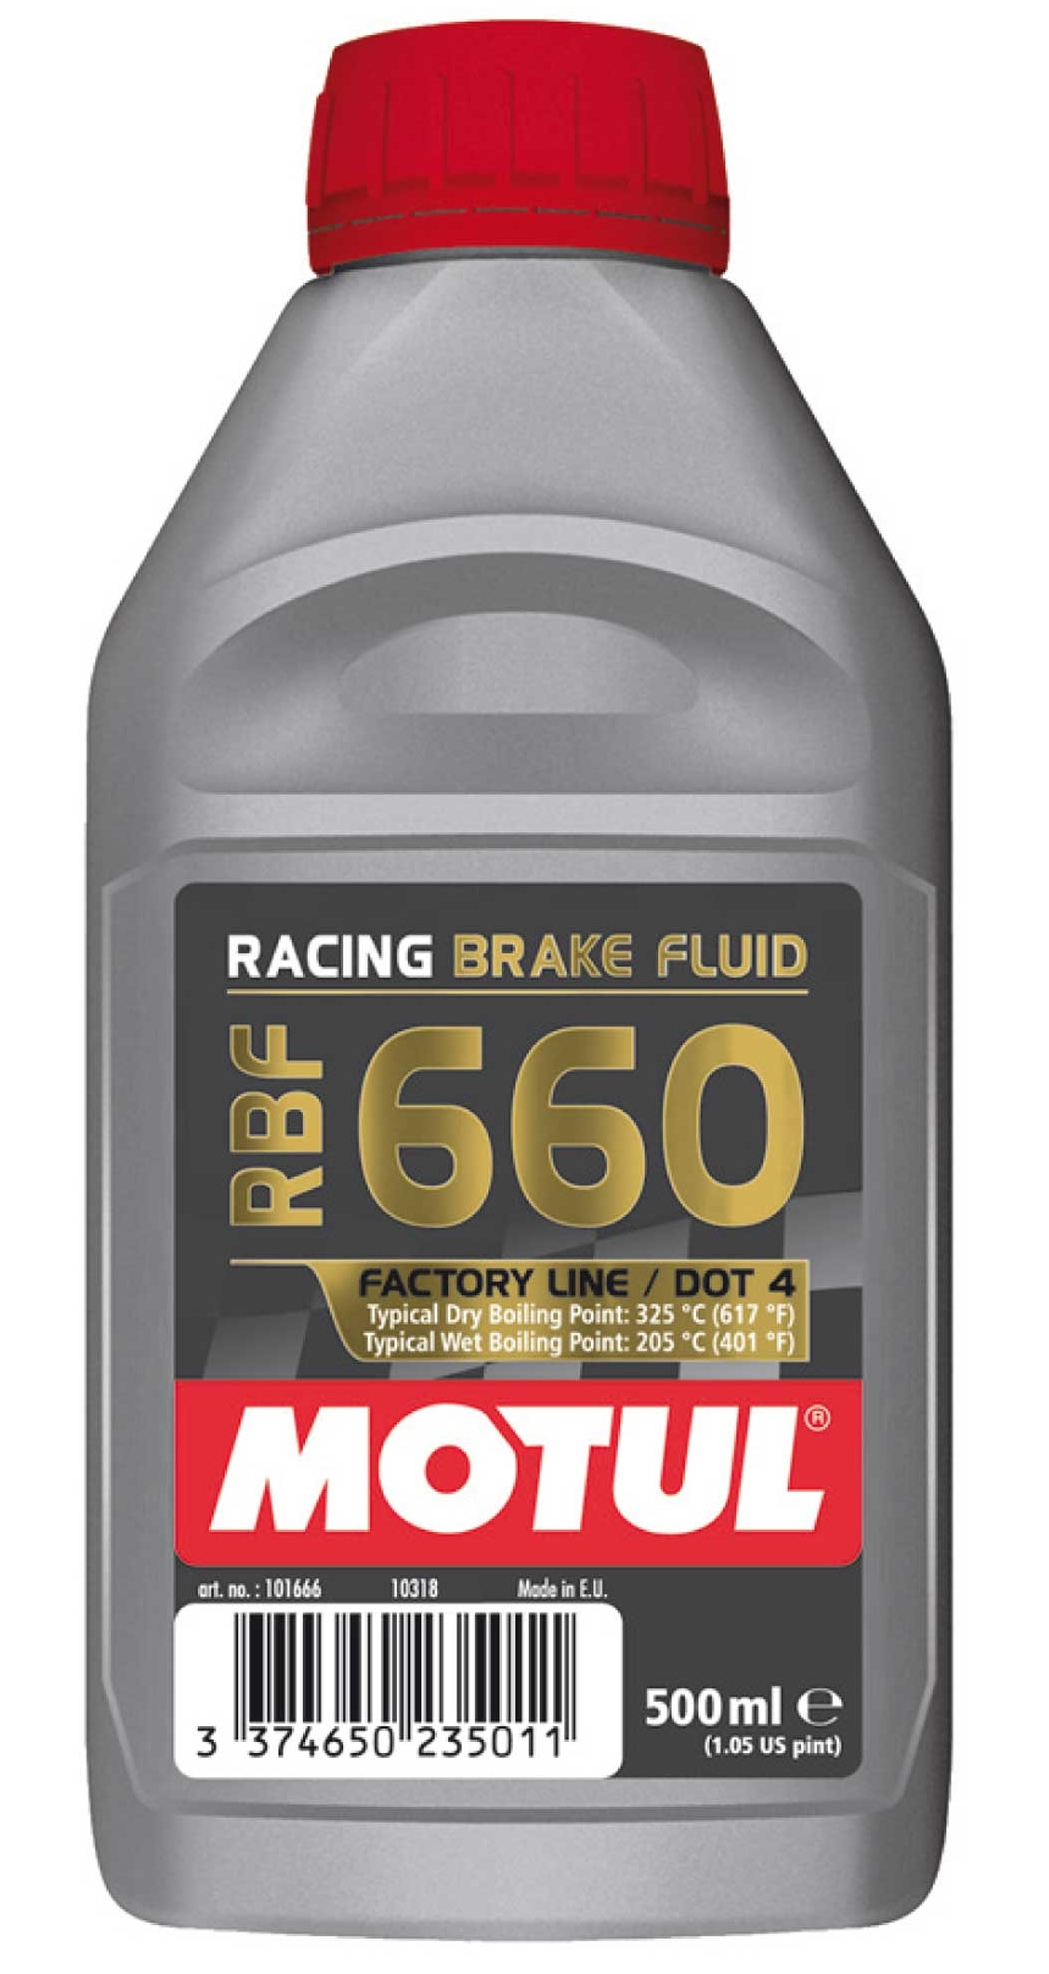 Motul RBF 660 Brake Fluid - 500mL